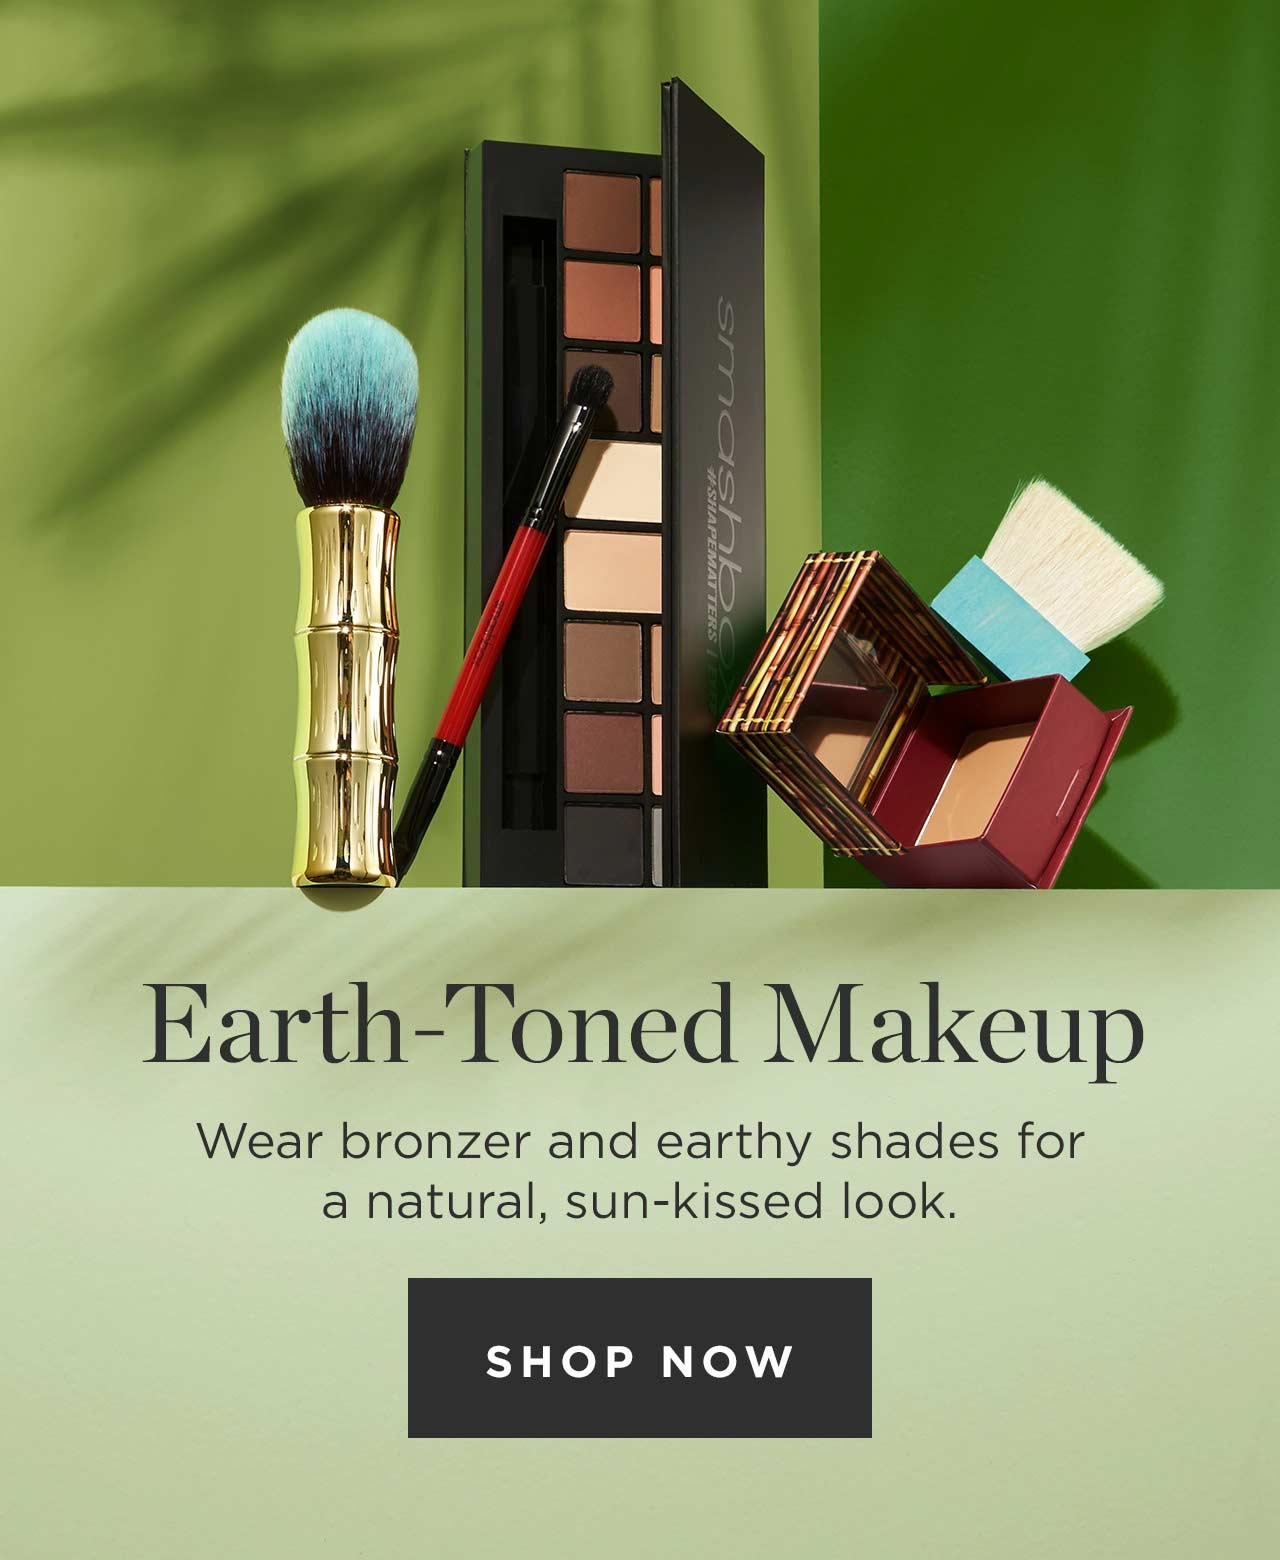 Earth-Toned Makeup